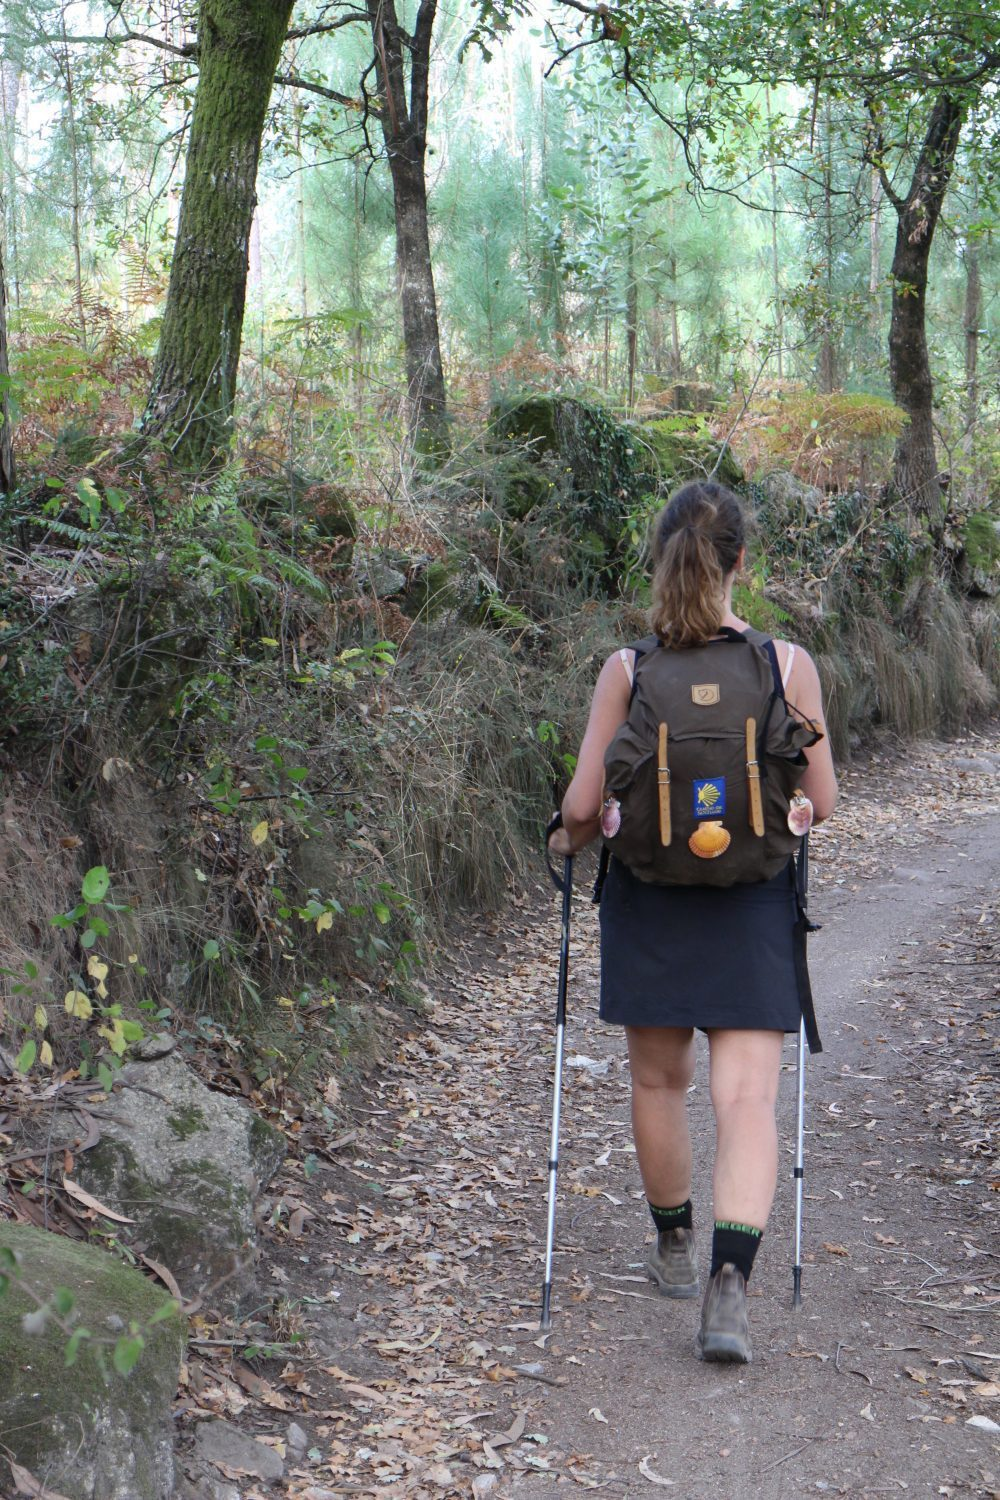 Walking the camino alone is it lonely